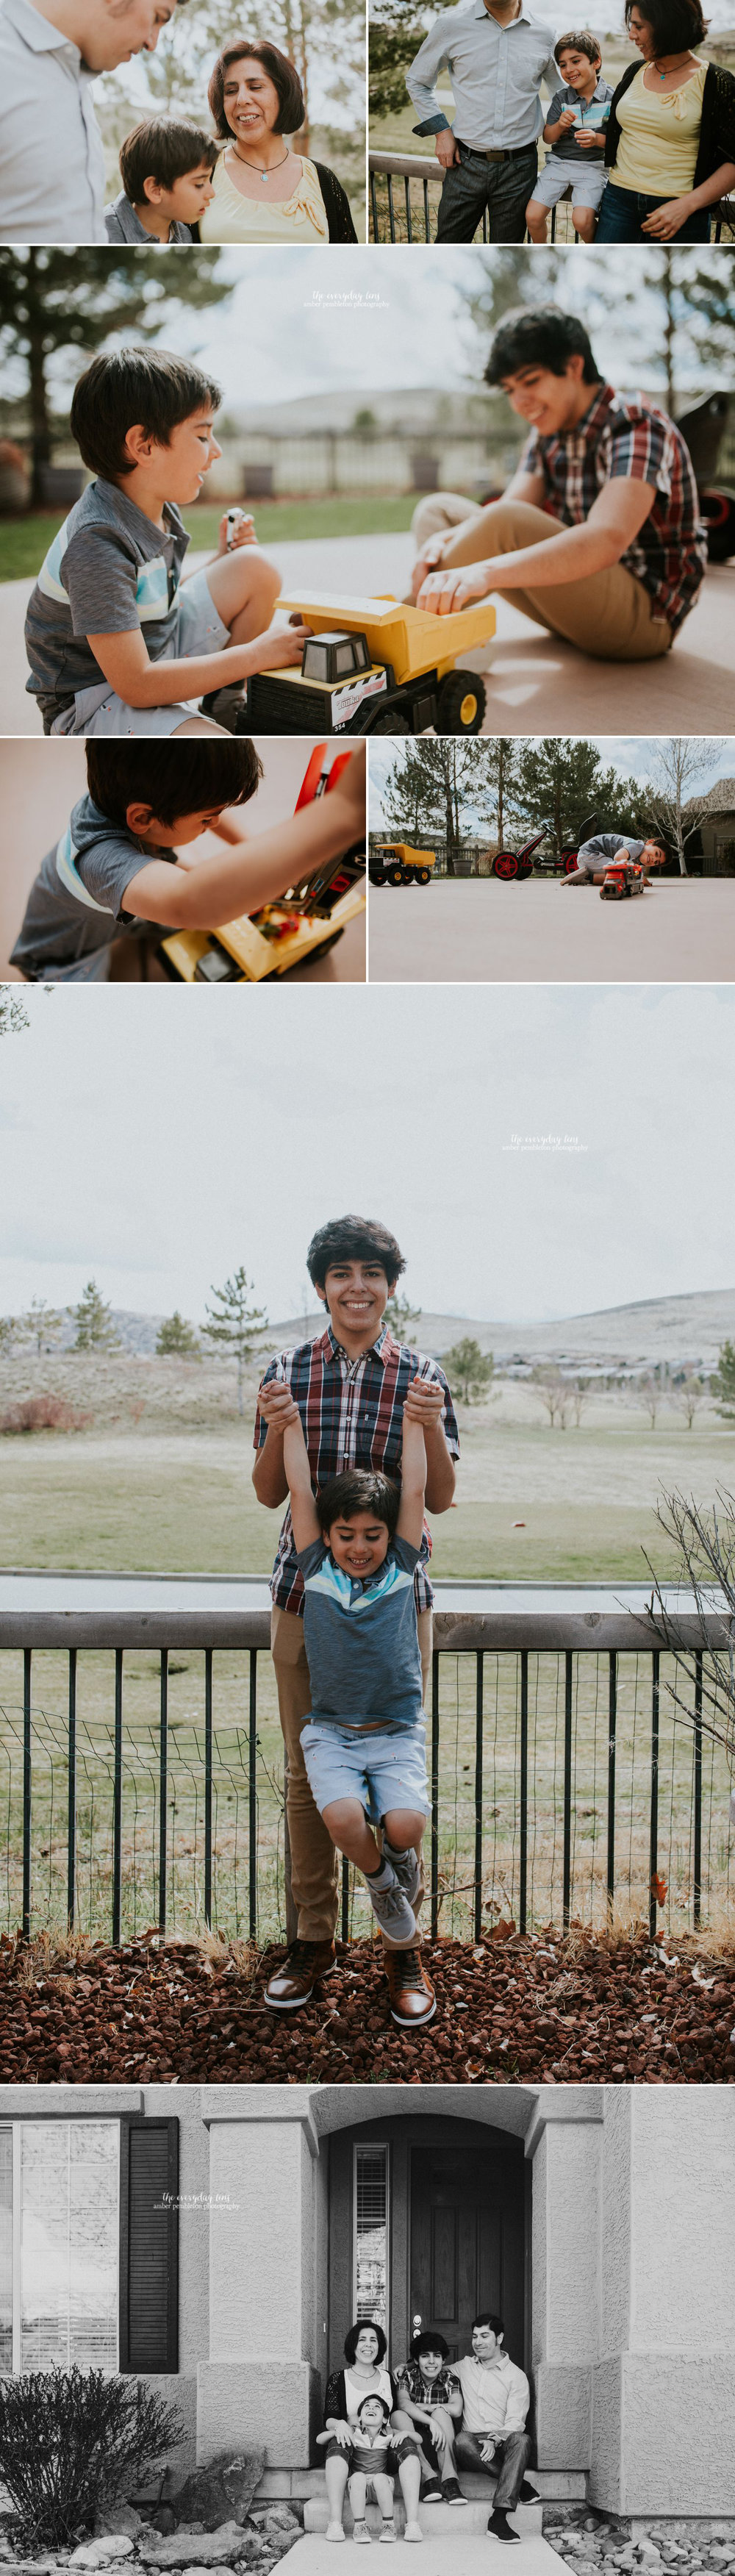 family-photographer-sparks-nv.jpg